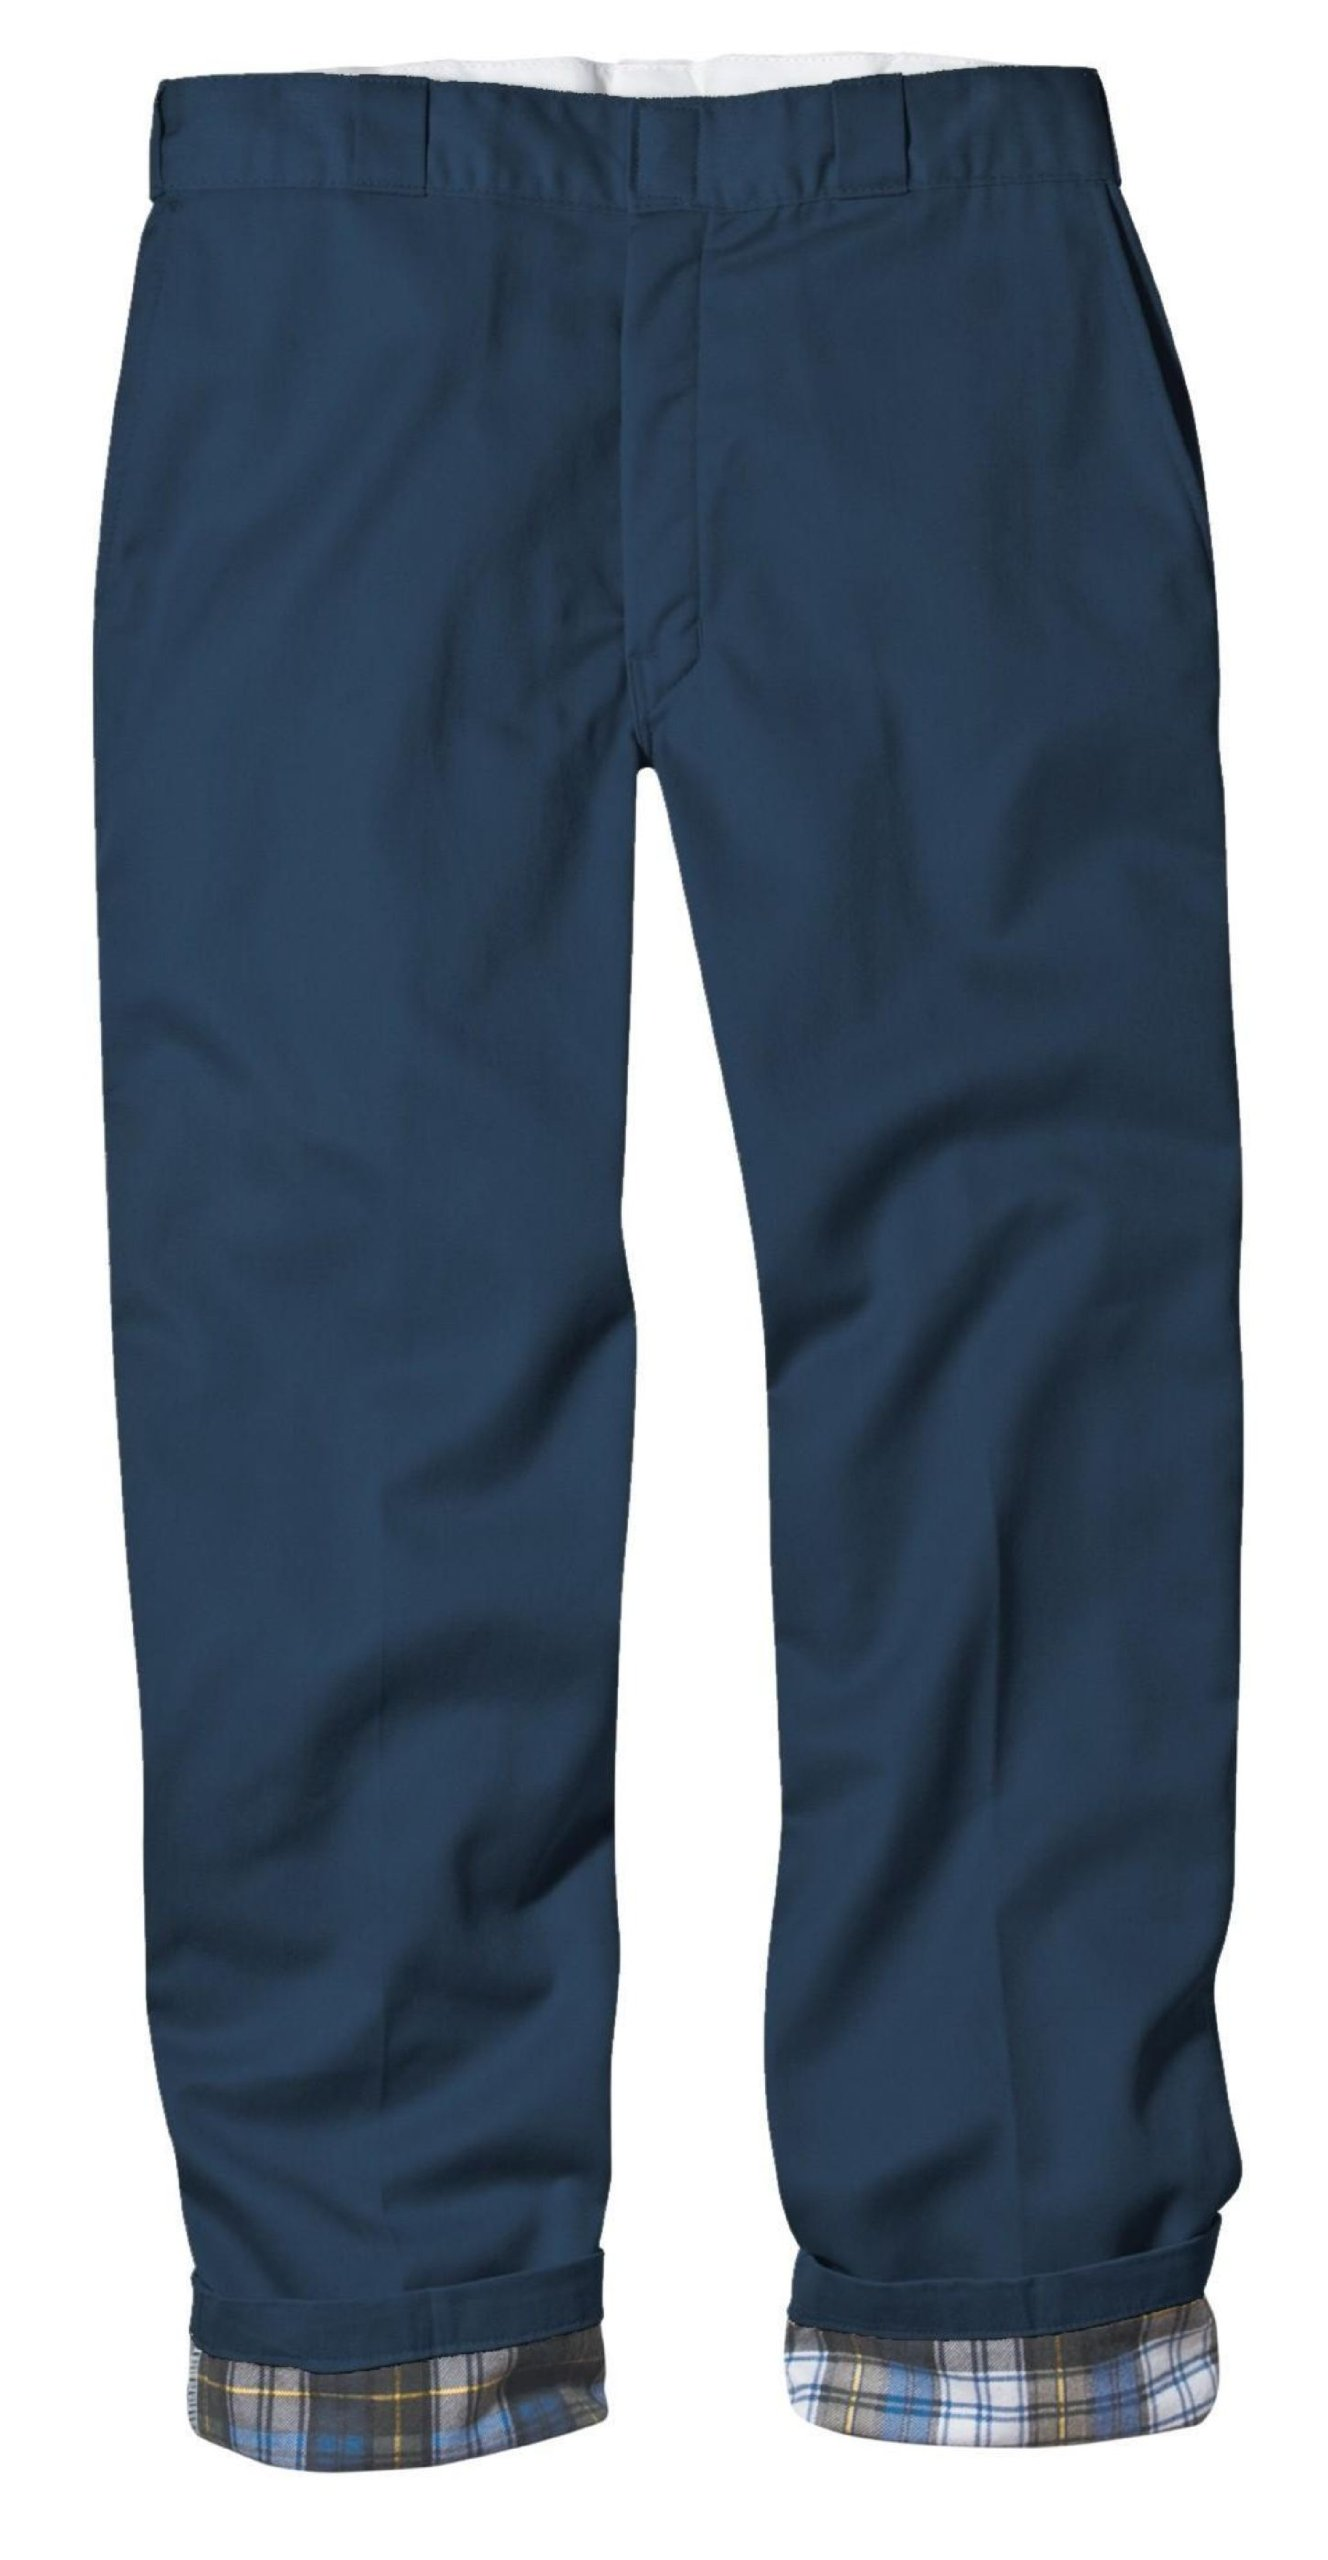 Dickies Men's Relaxed Fit Flannel-Lined Work Pant, Navy, 34X34